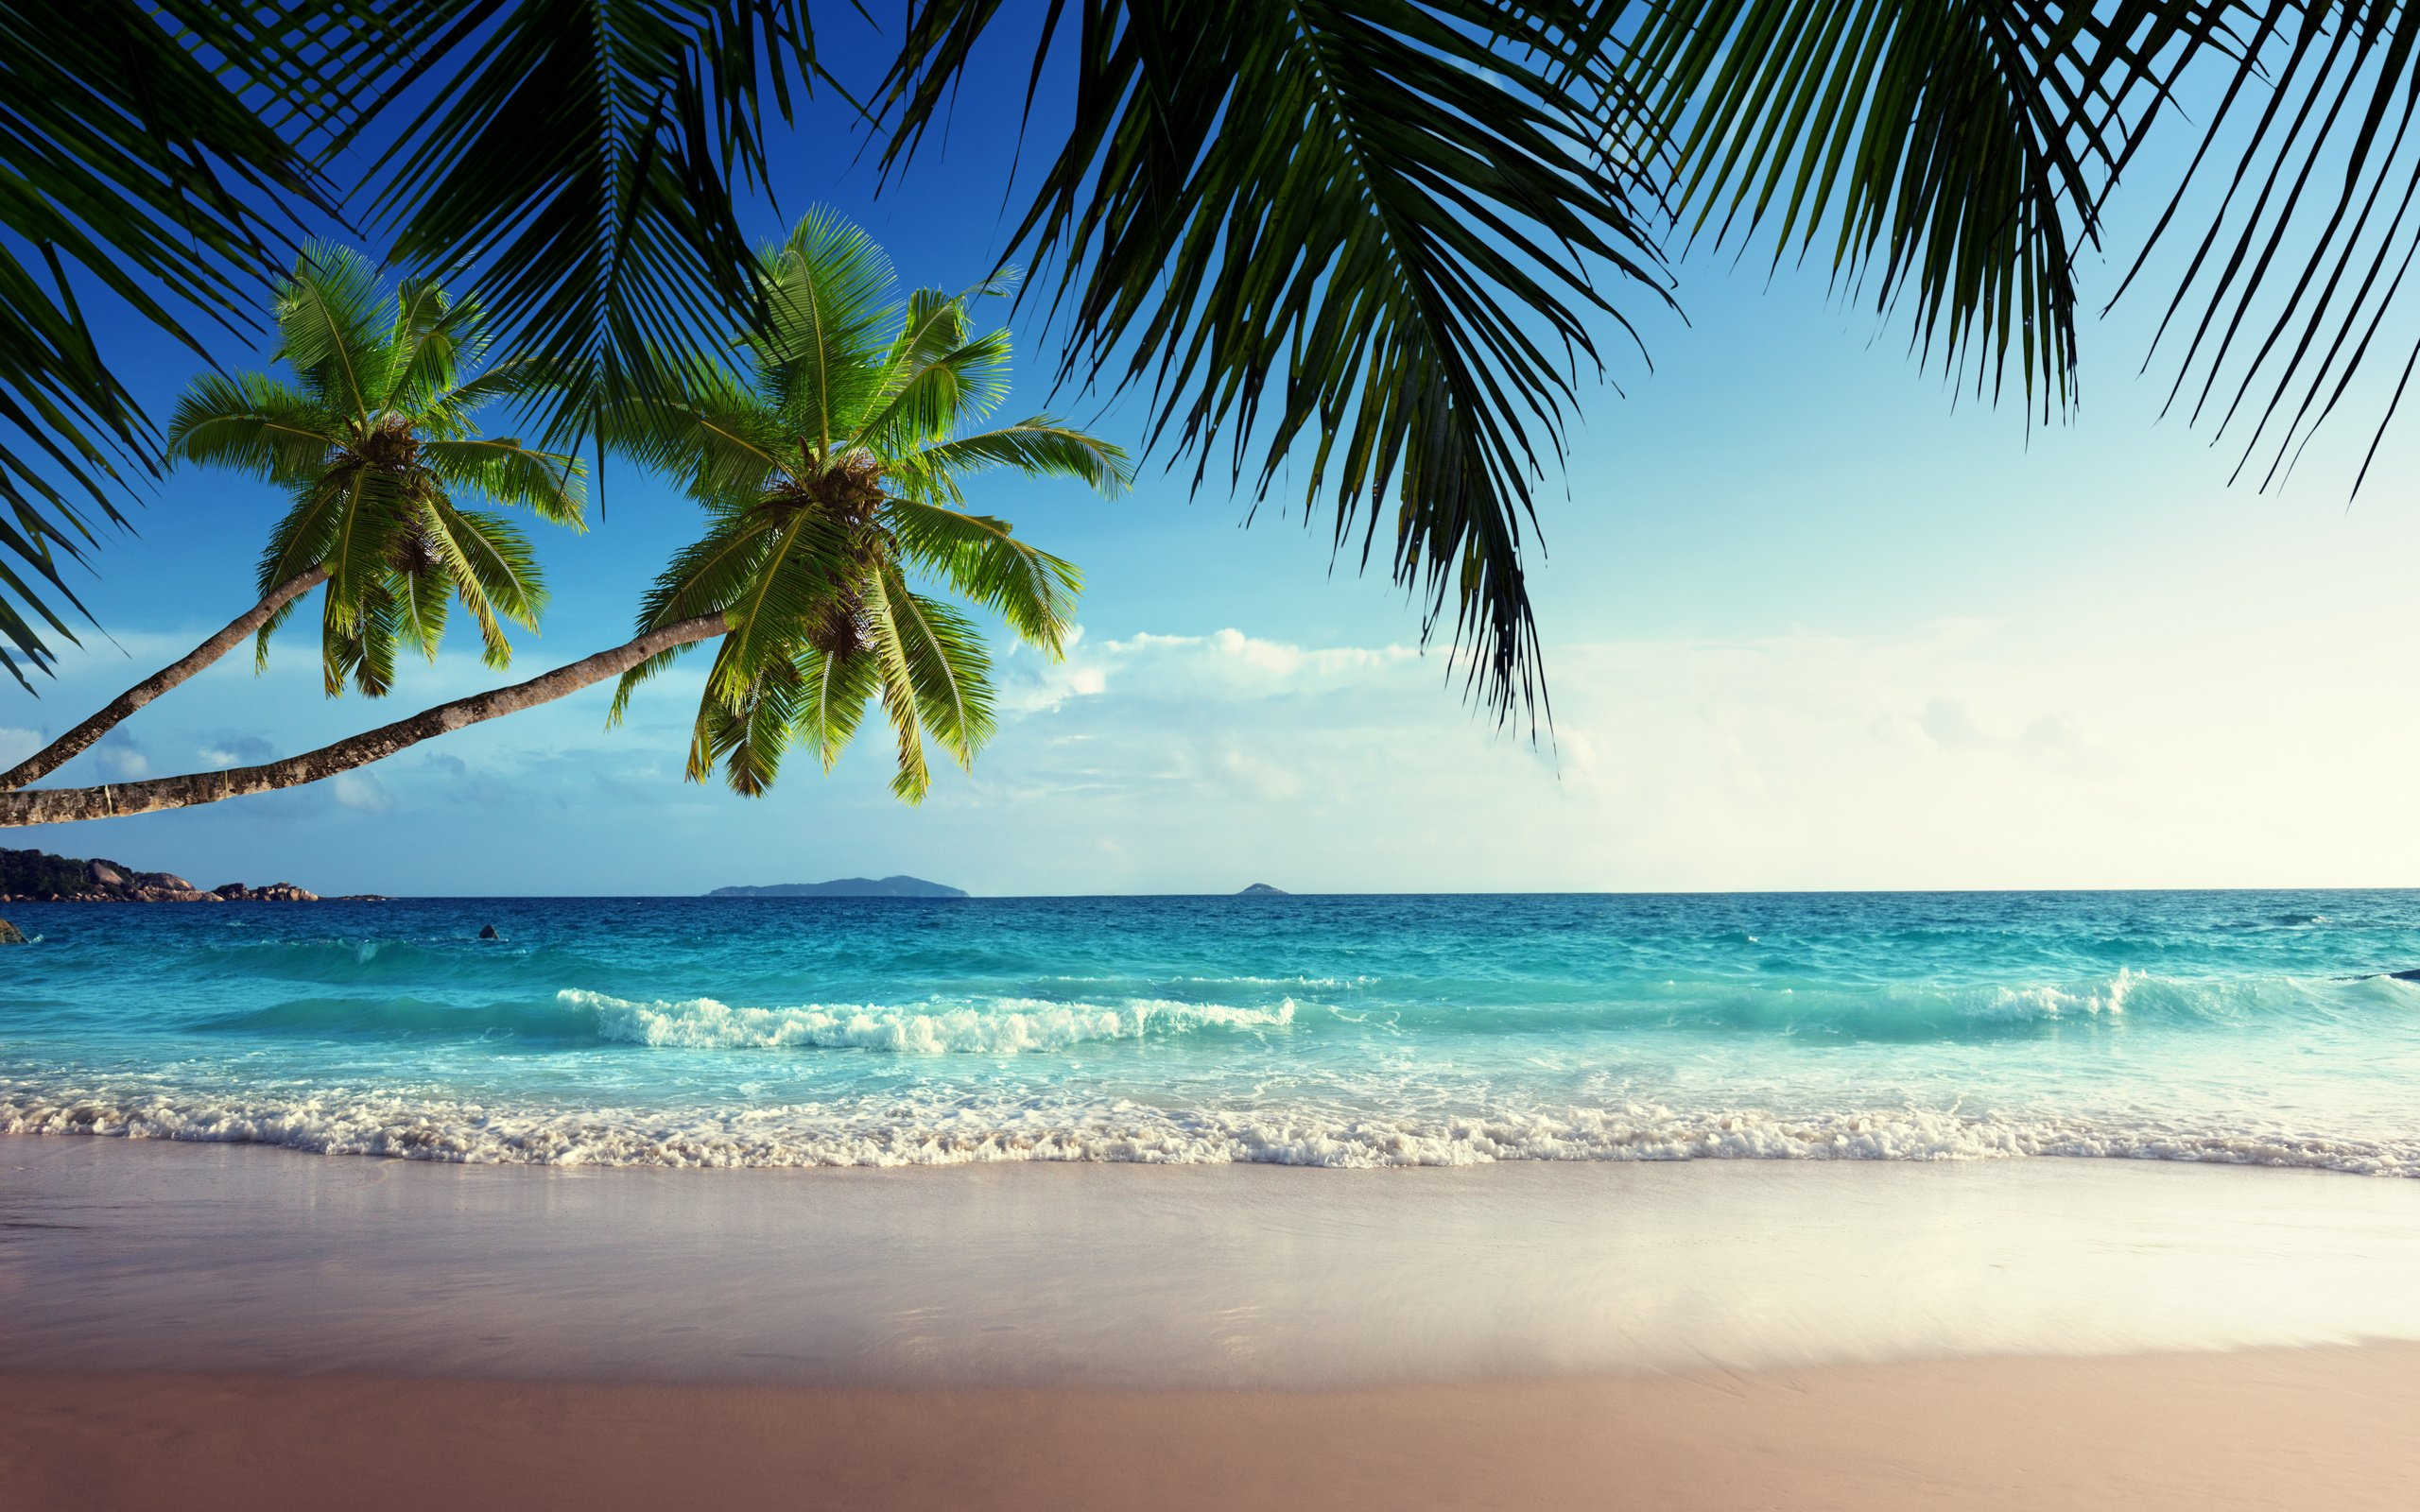 Emerald sea paradise sunshine beach sky tropical blue coast wallpaper 2560x1600